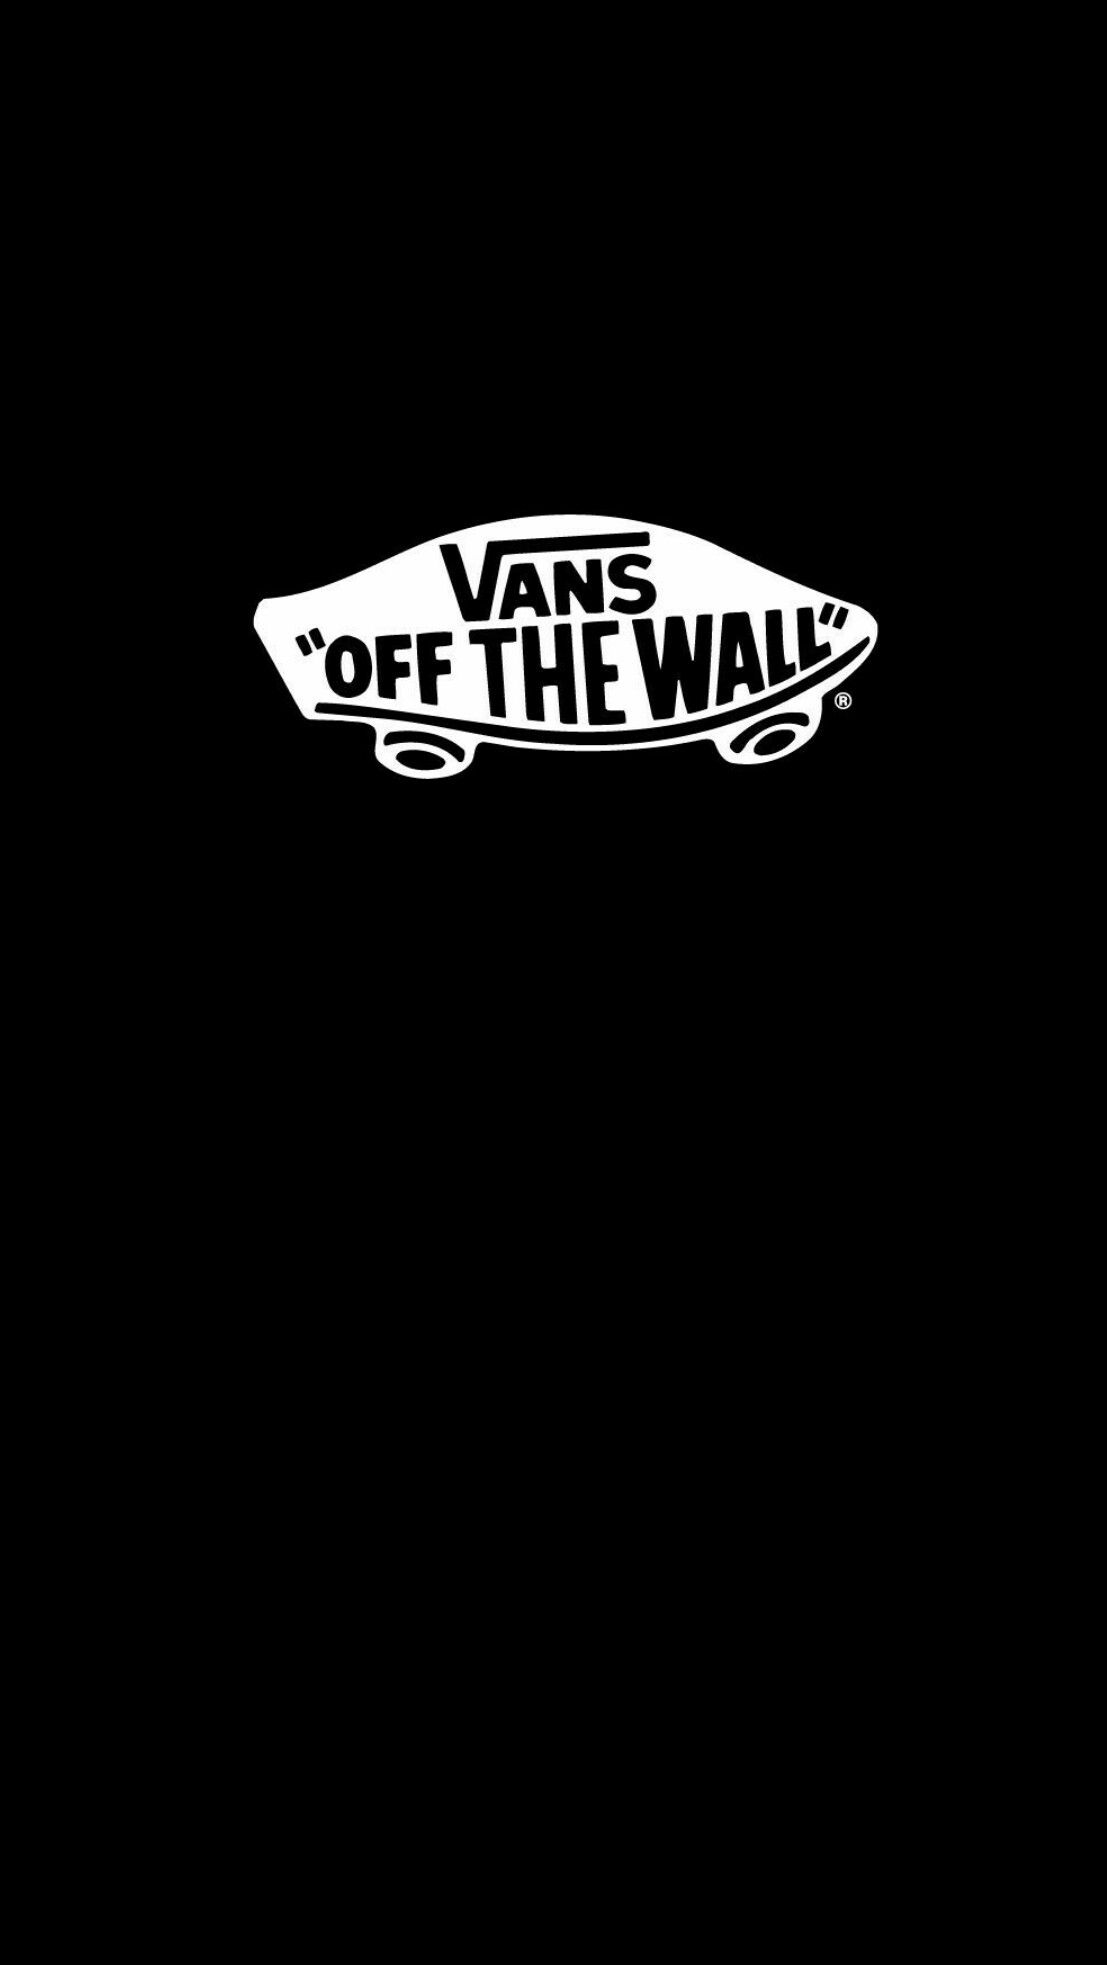 Vans Phone Wallpapers Top Free Vans Phone Backgrounds